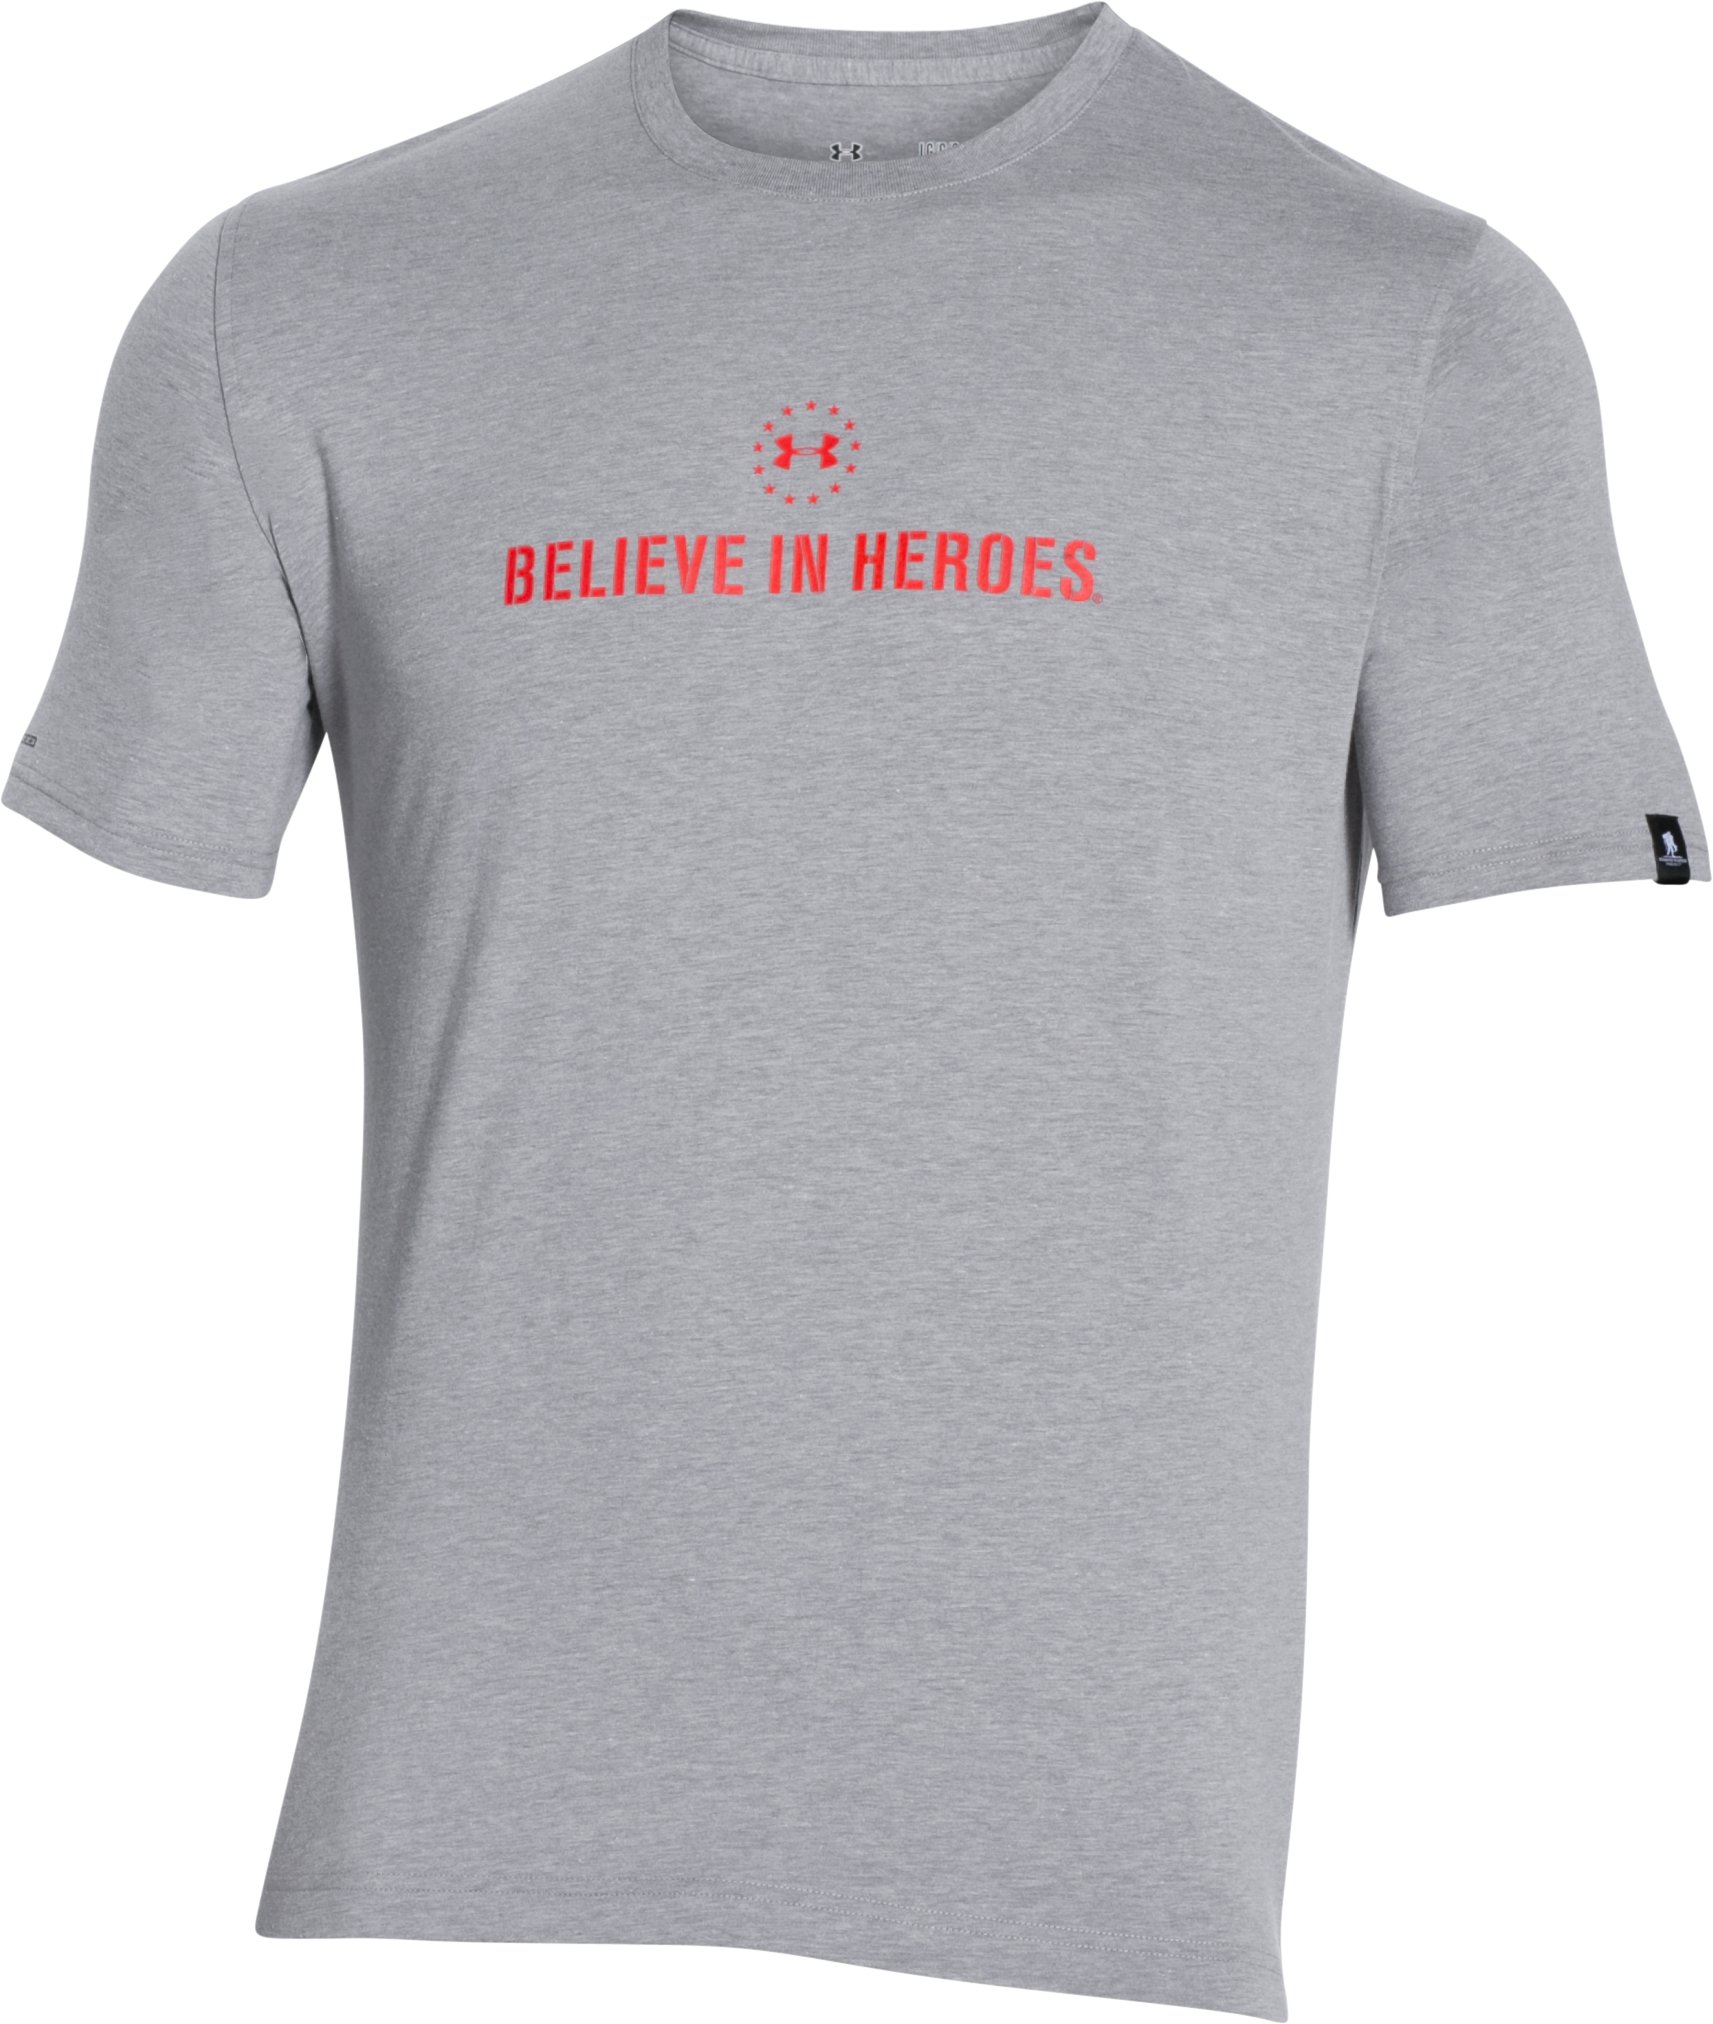 Men's WWP Logo T-Shirt, True Gray Heather,